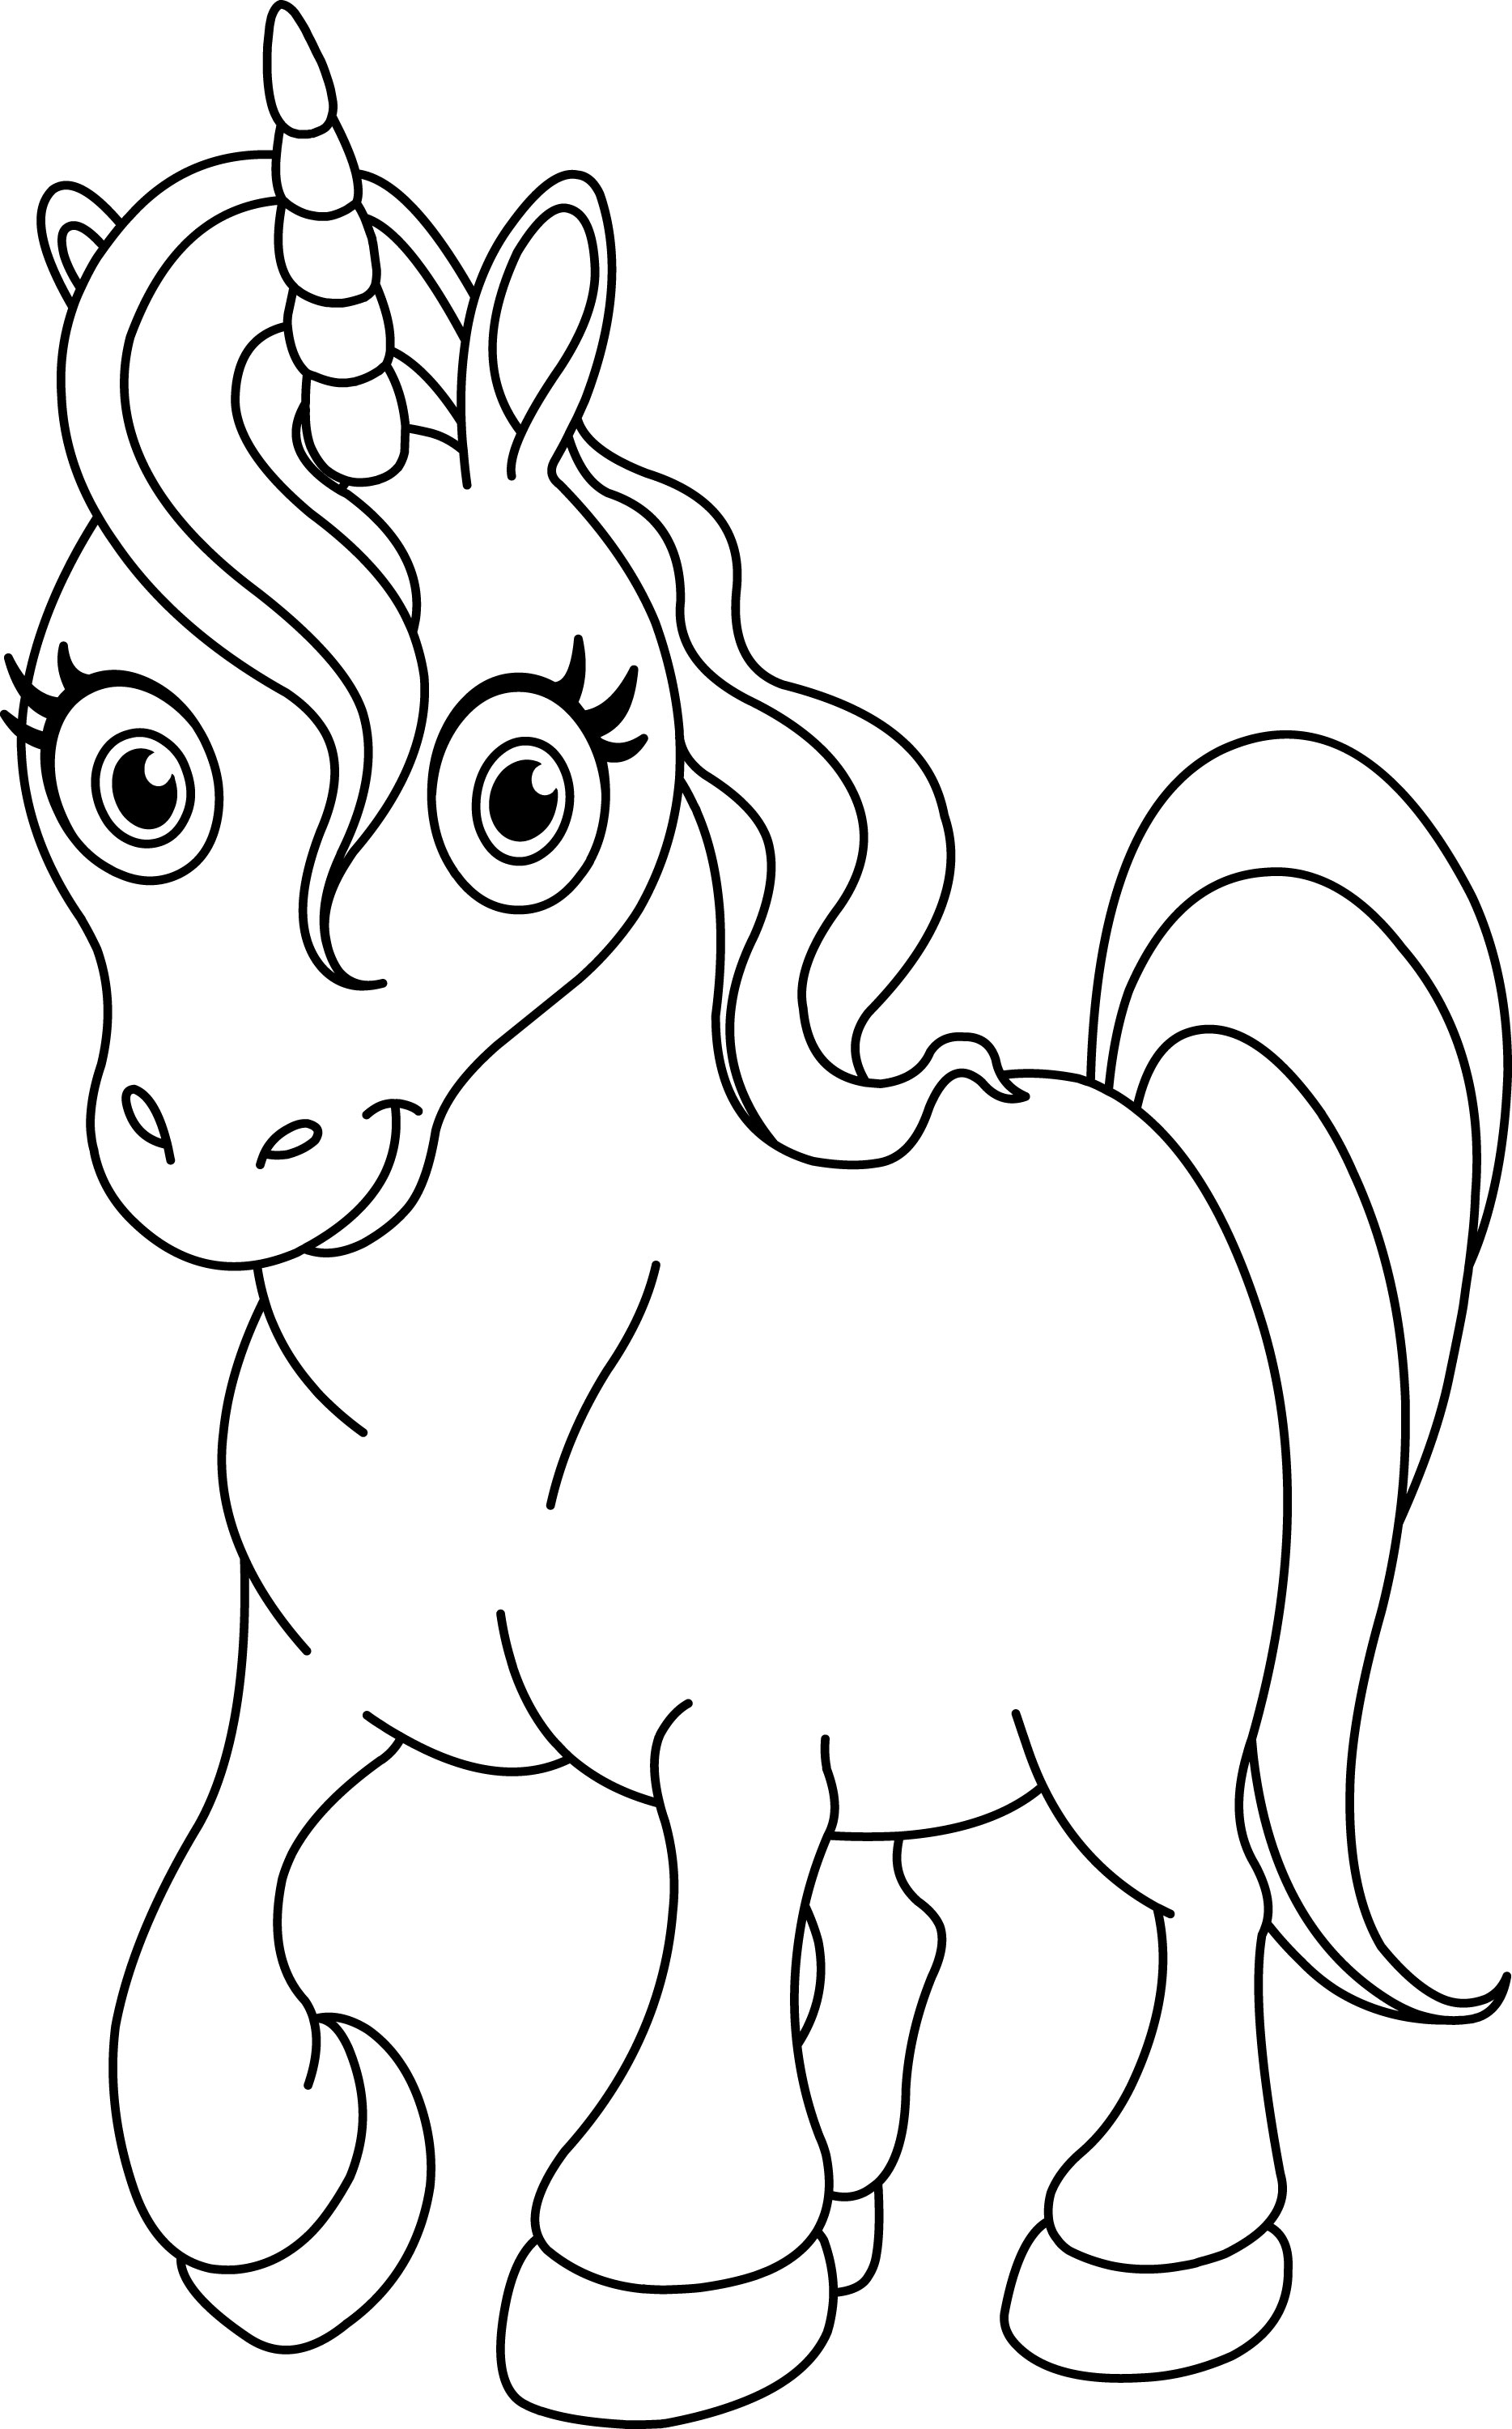 coloring sheet unicorn coloring pictures to print free printable unicorn coloring pages for kids sheet to coloring print coloring unicorn pictures